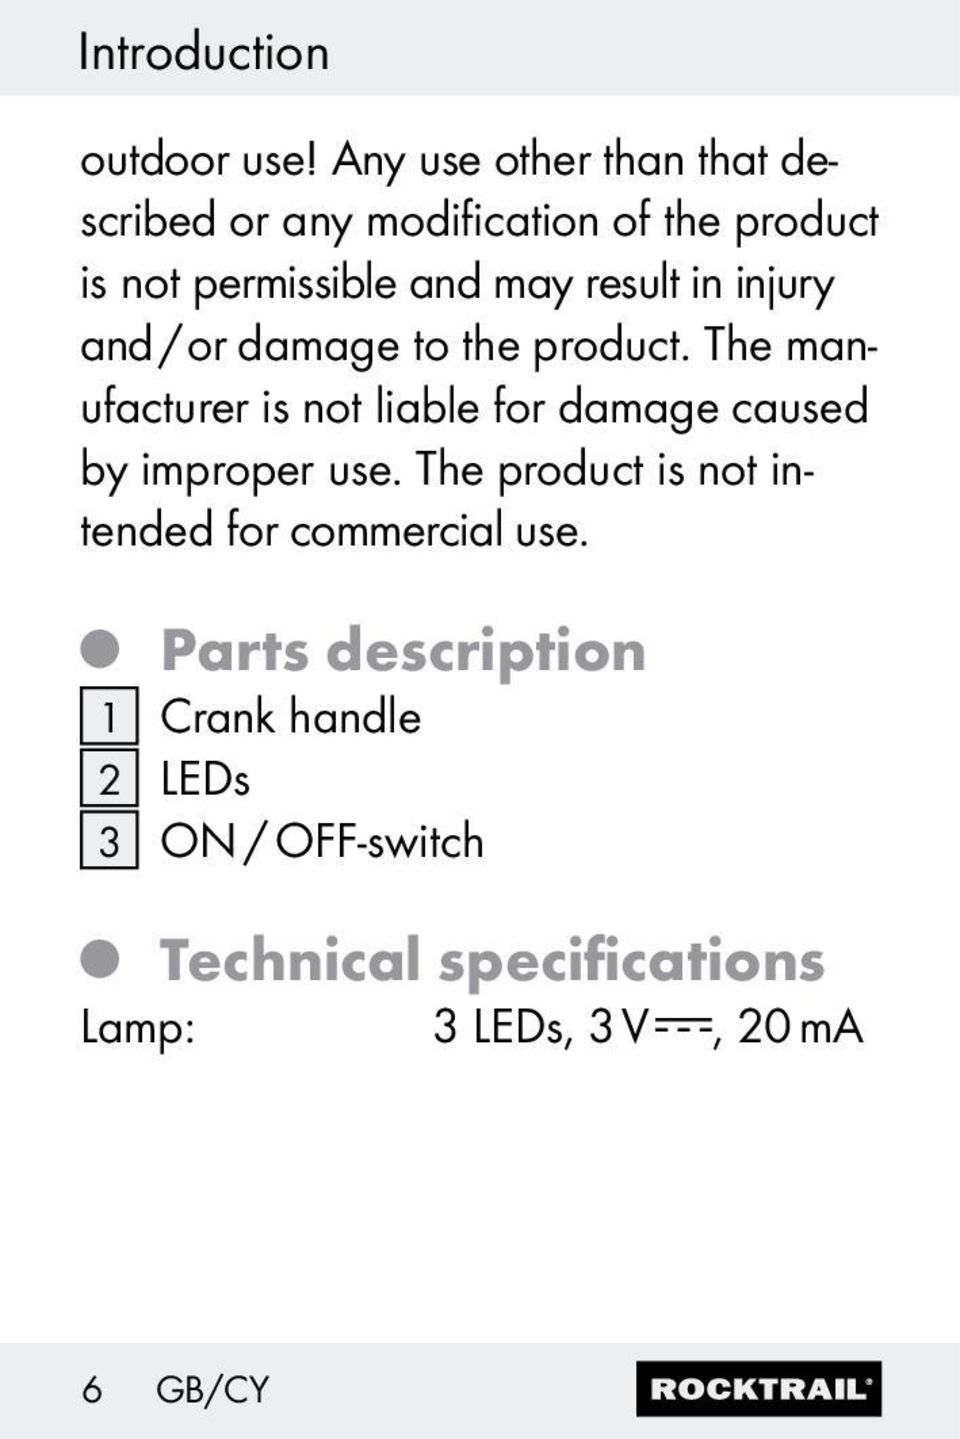 result in injury and / or damage to the product.